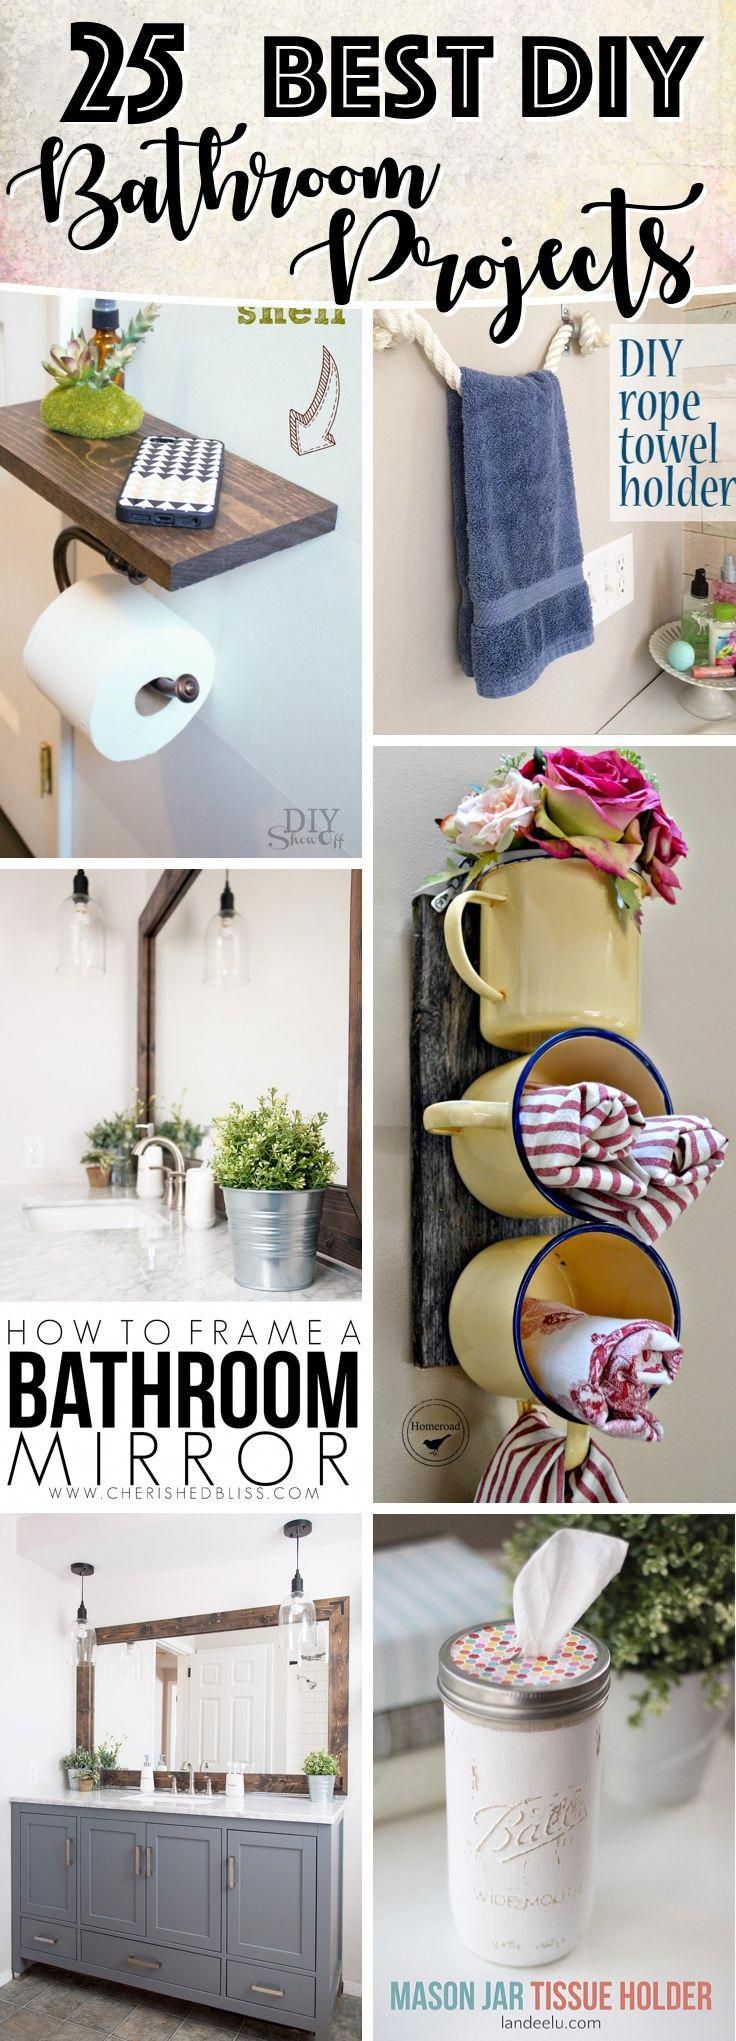 25 Utterly Innovative DIY Bathroom Projects To Give Your ...